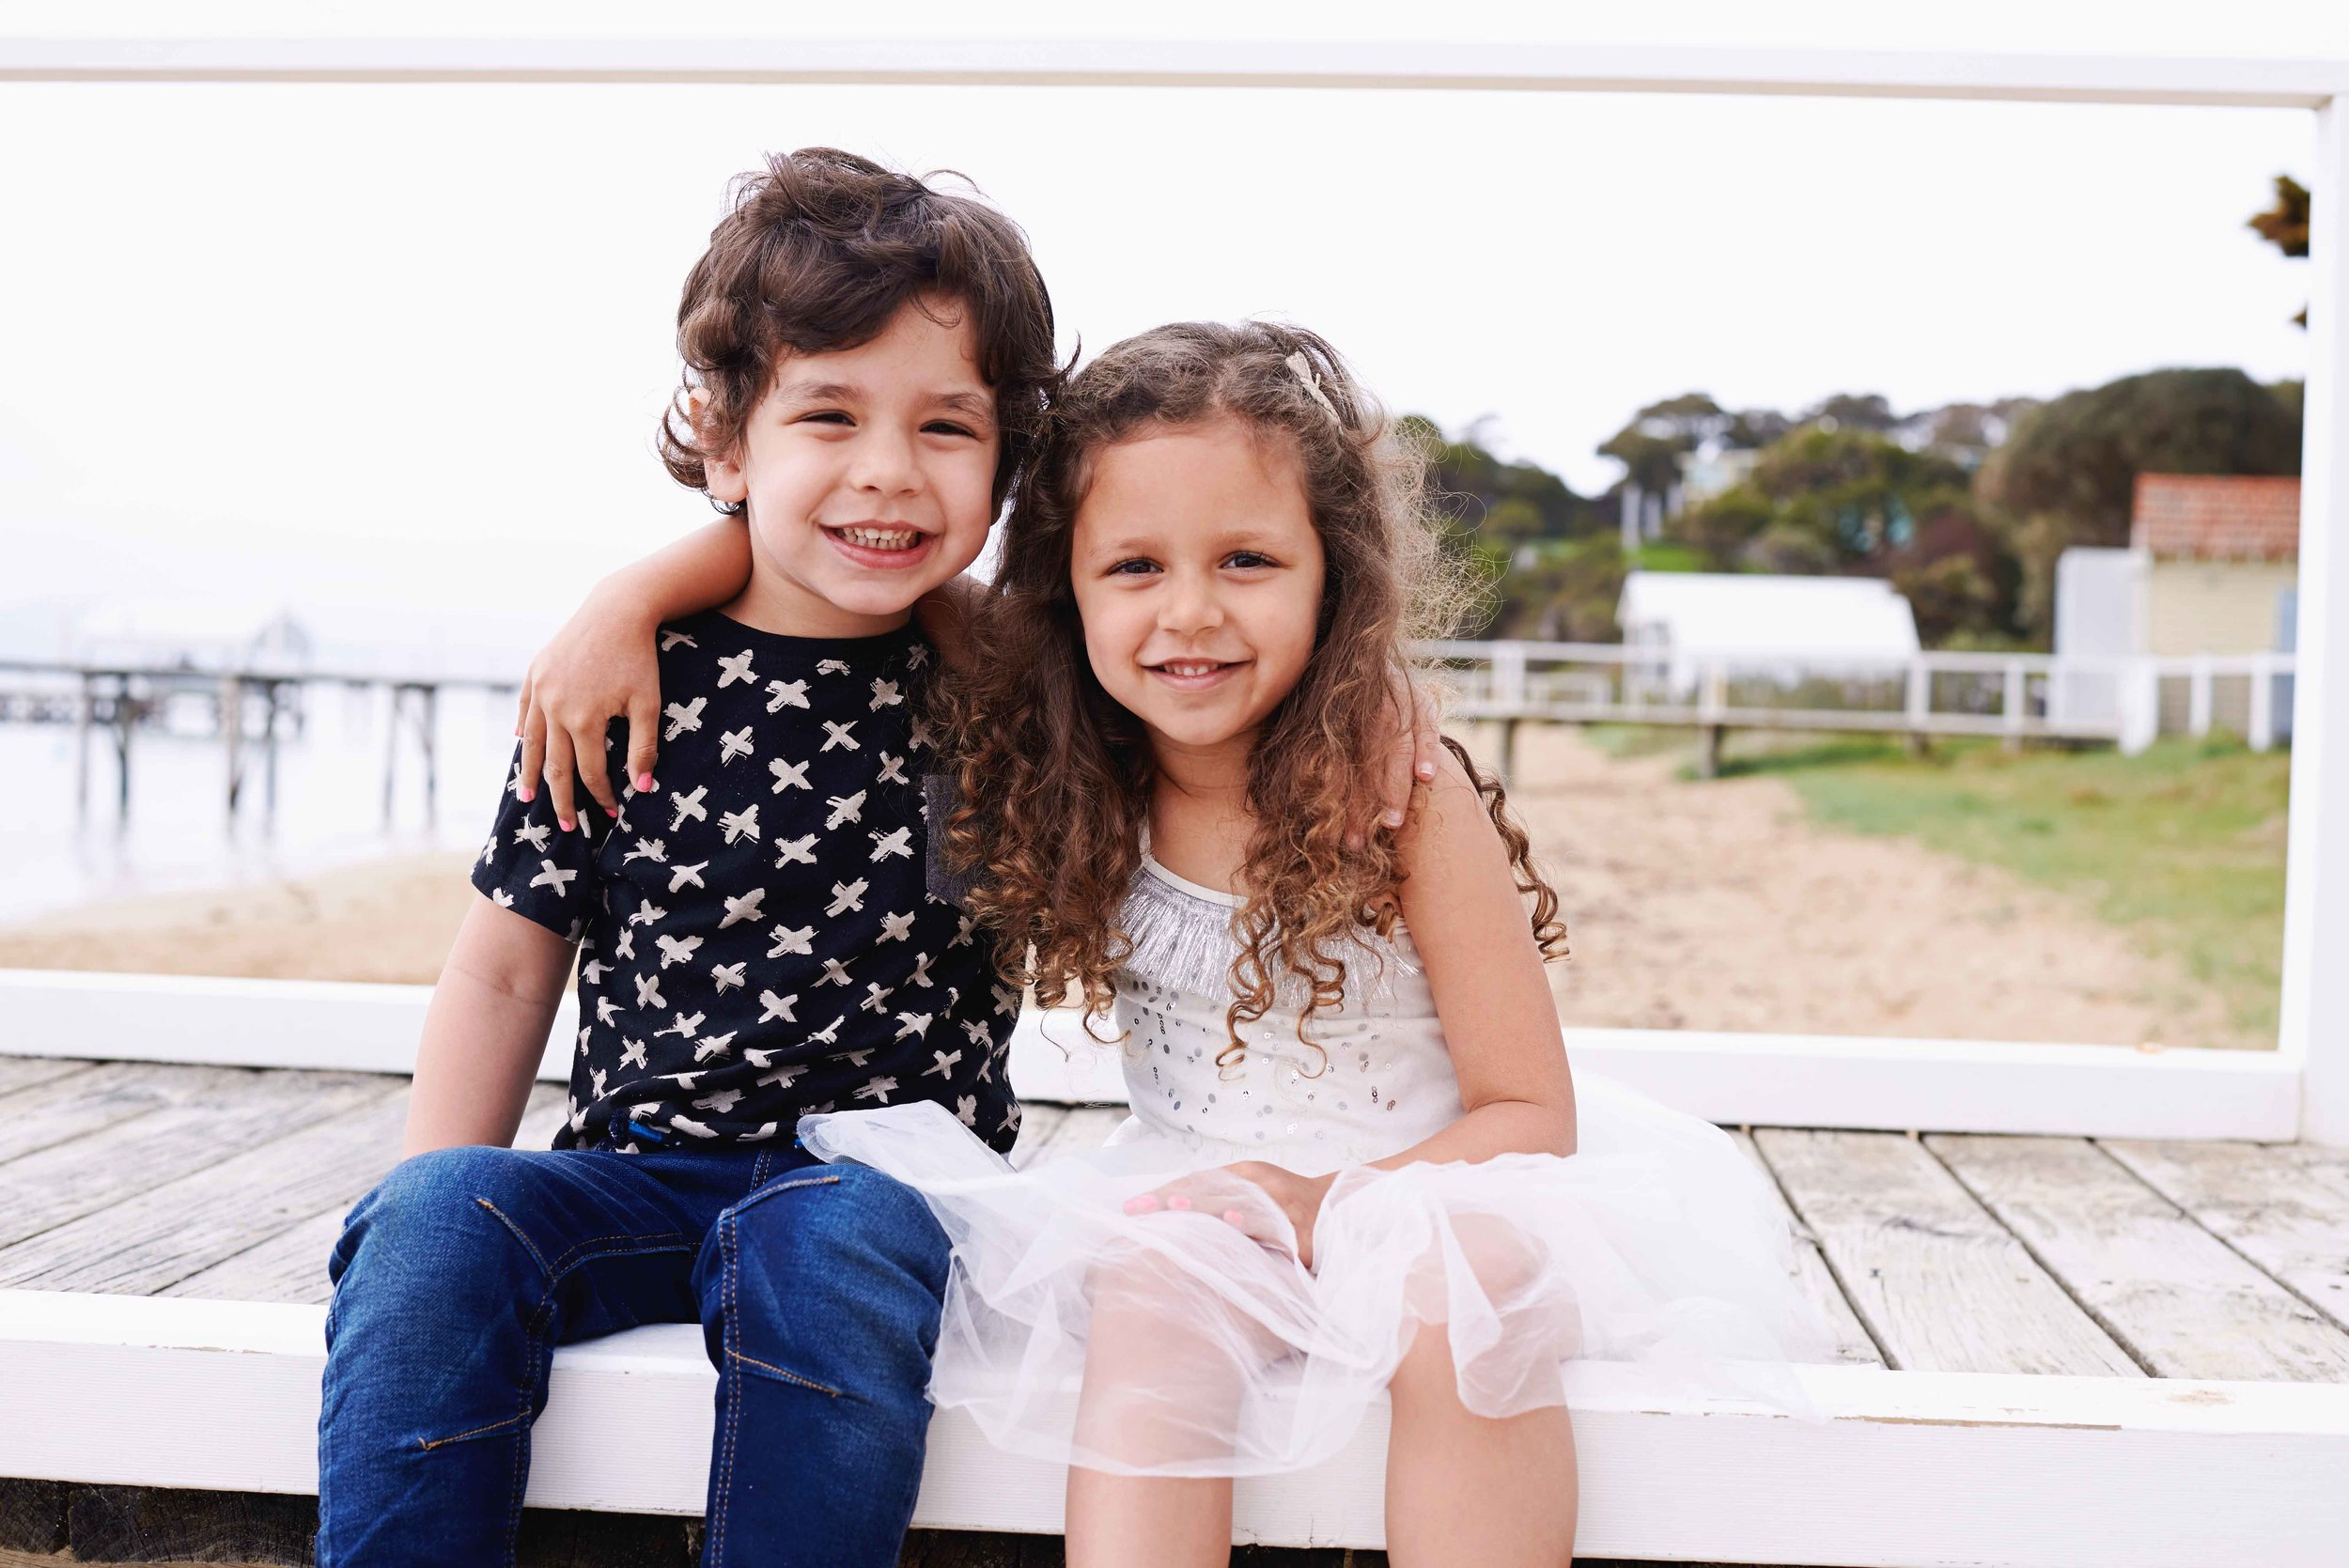 Mornington-Peninsula-Family-photographer-Rye-Sorrento-Natural-family-photos-melbourne-marissa-jade-photography-3.jpg